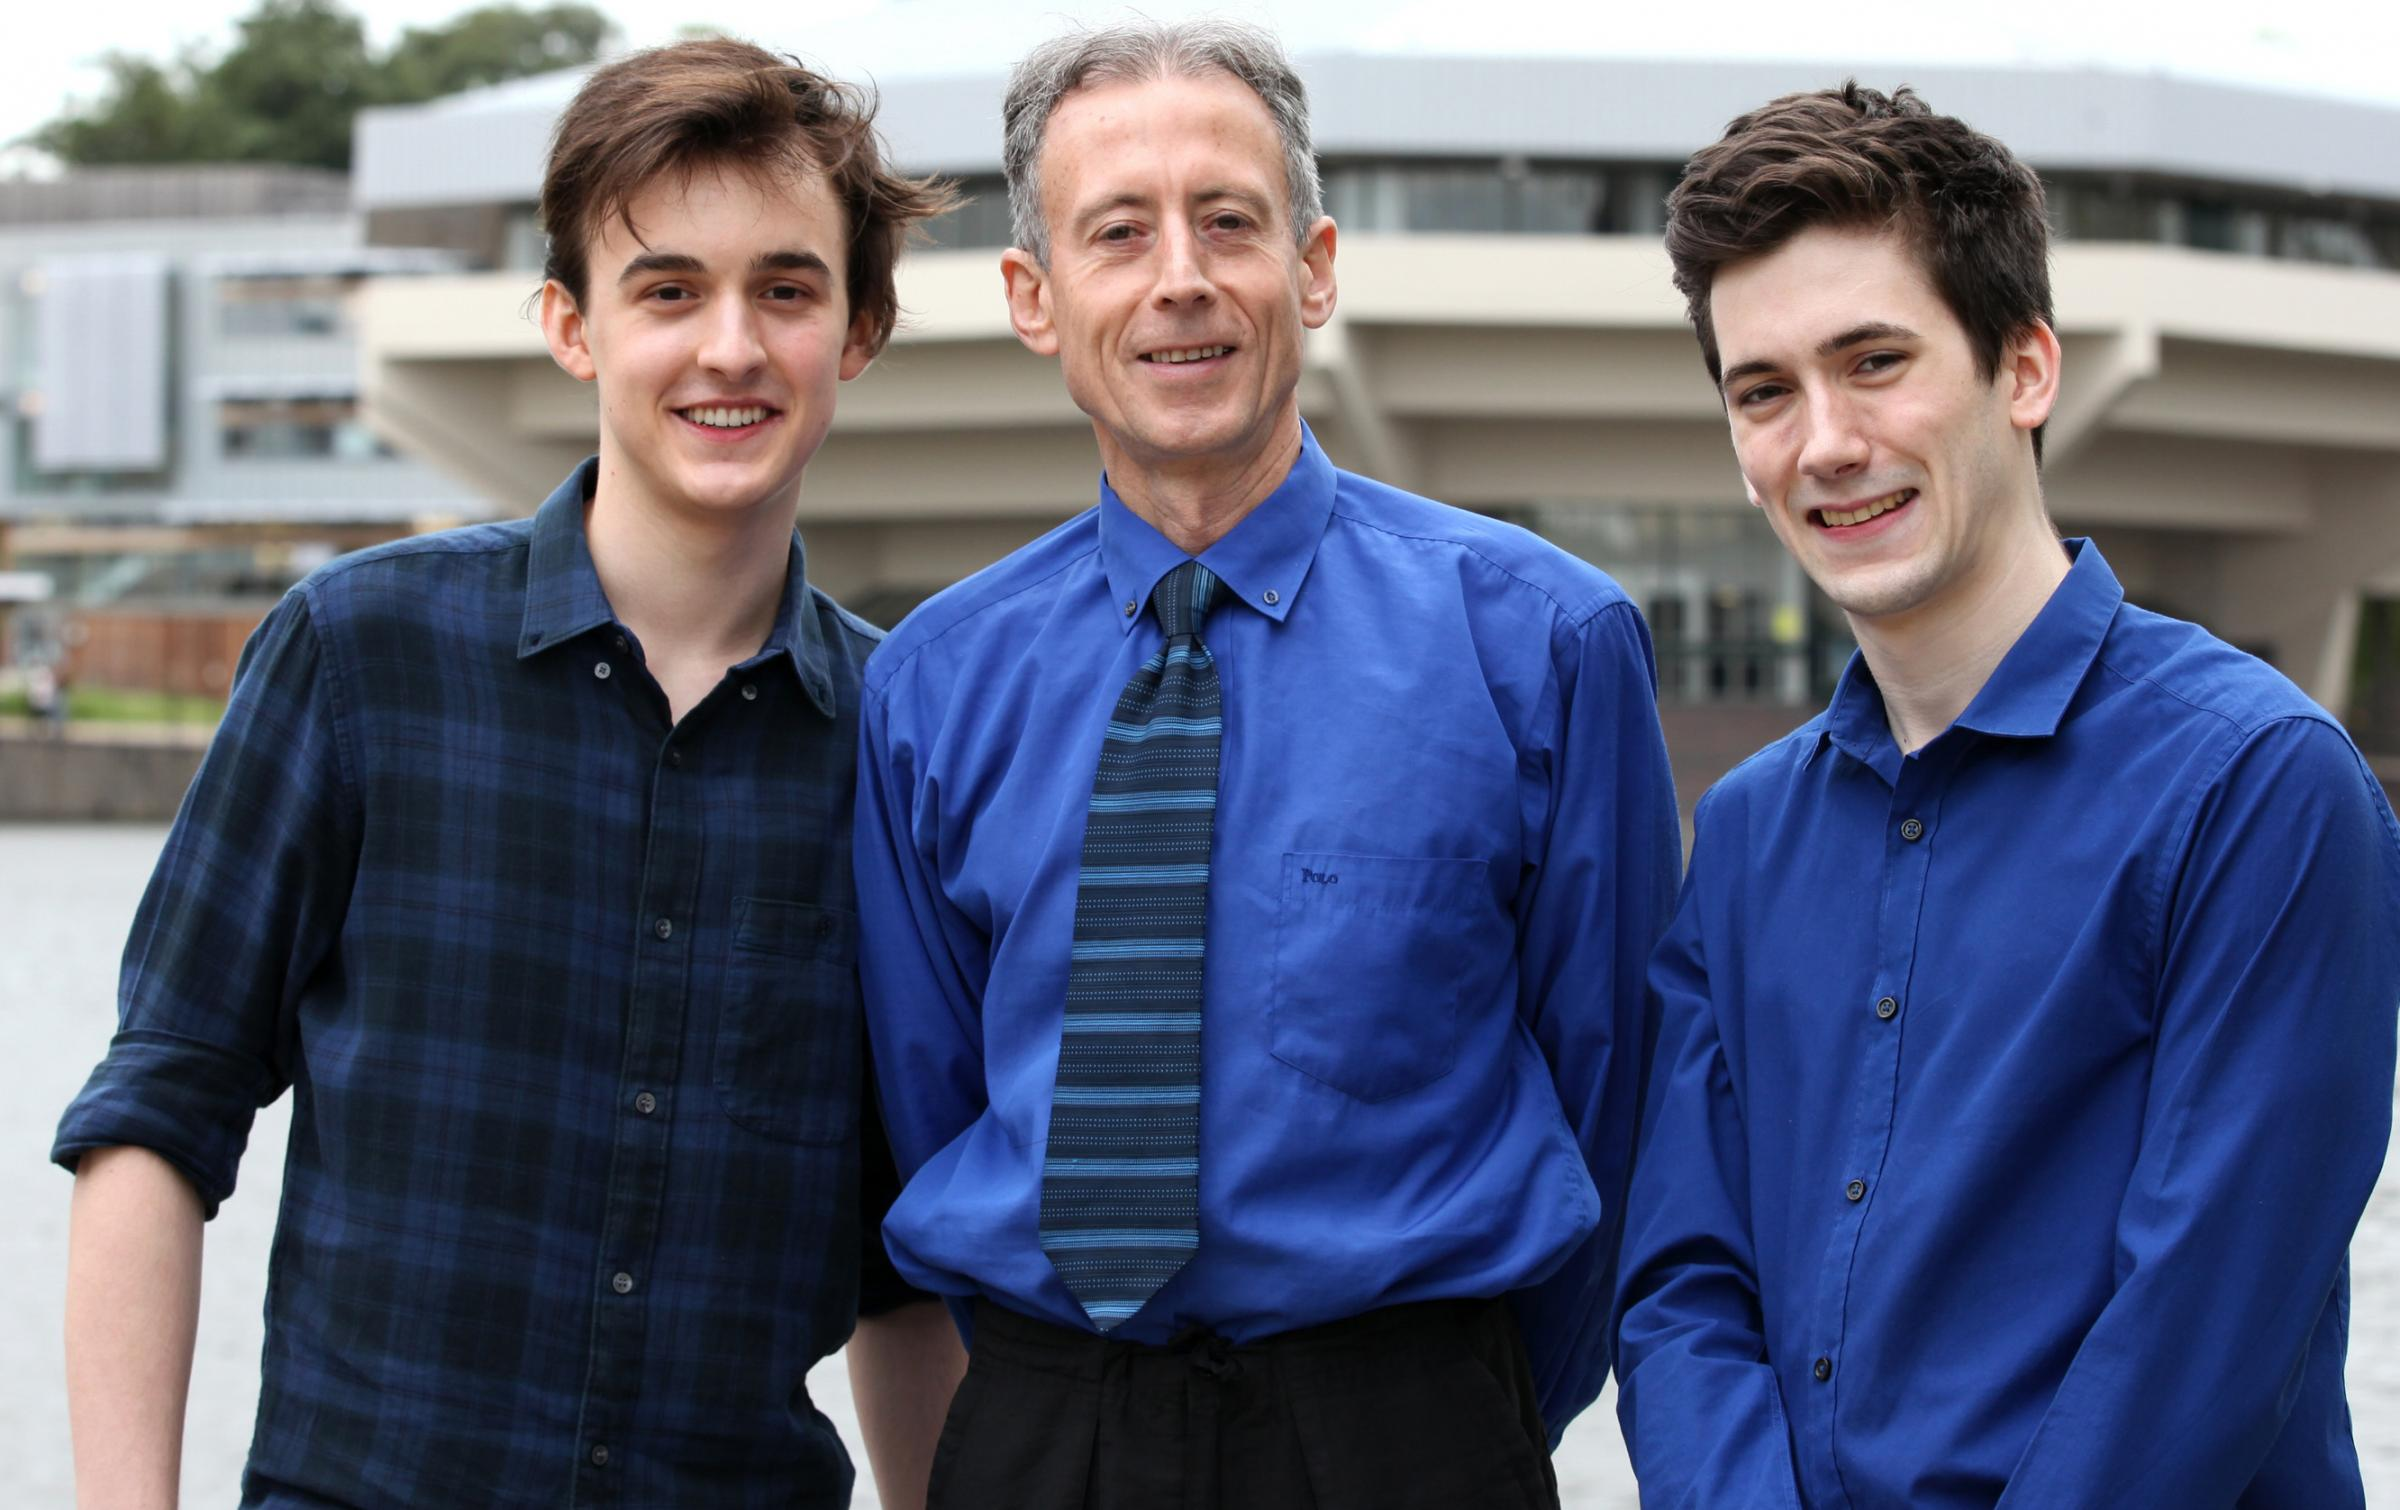 Political campaigner Peter Tatchell at the University of York with students Harry Scoffin, left, of The York Union, and Tom Clark, right, of Derwent College.